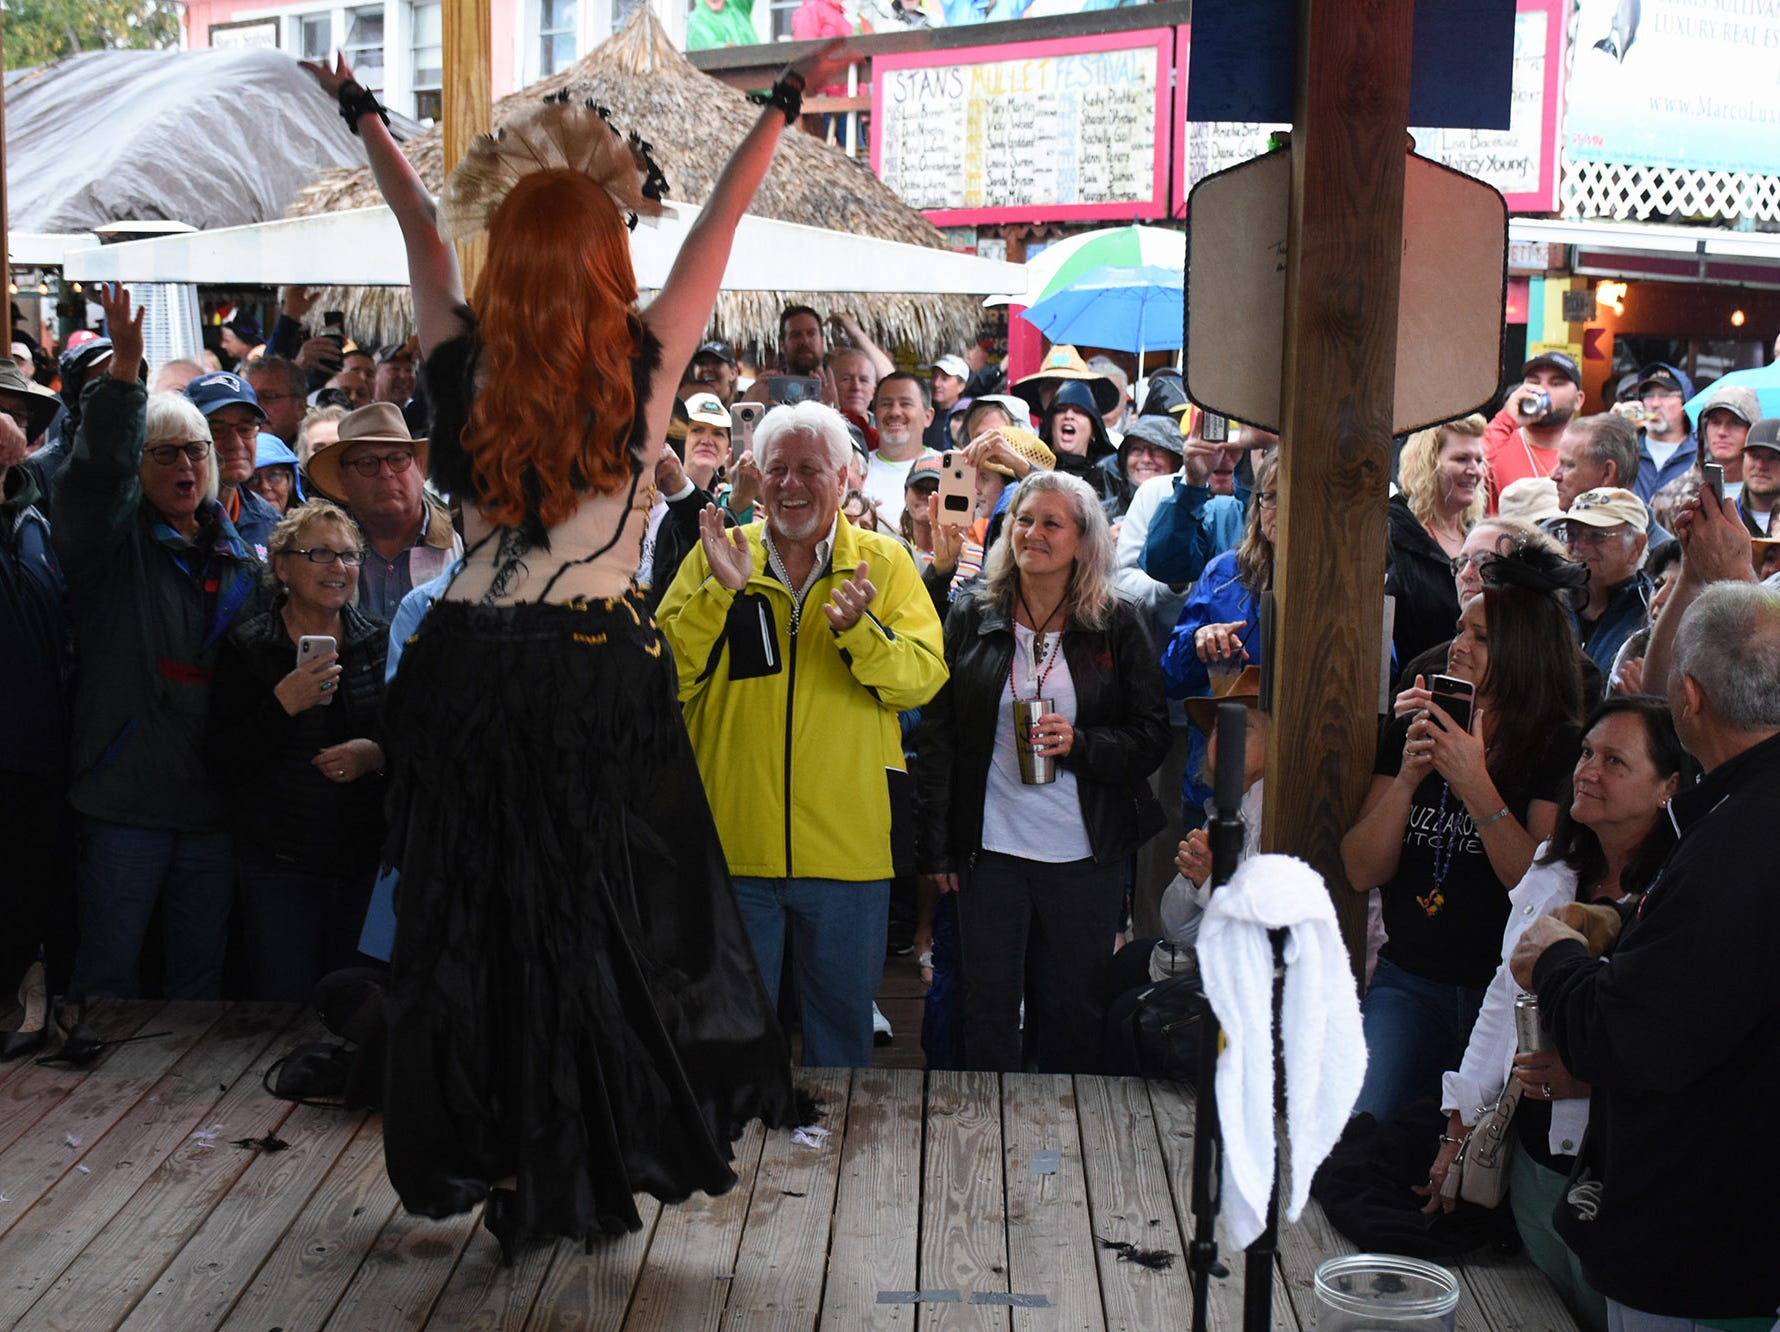 Kat Ebaugh of Marco Island was named first runner-up. in a photo finish. Stan's Idle Hour restaurant held The 35th annual Mullet Festival over the weekend, a rain and beer-soaked celebration.